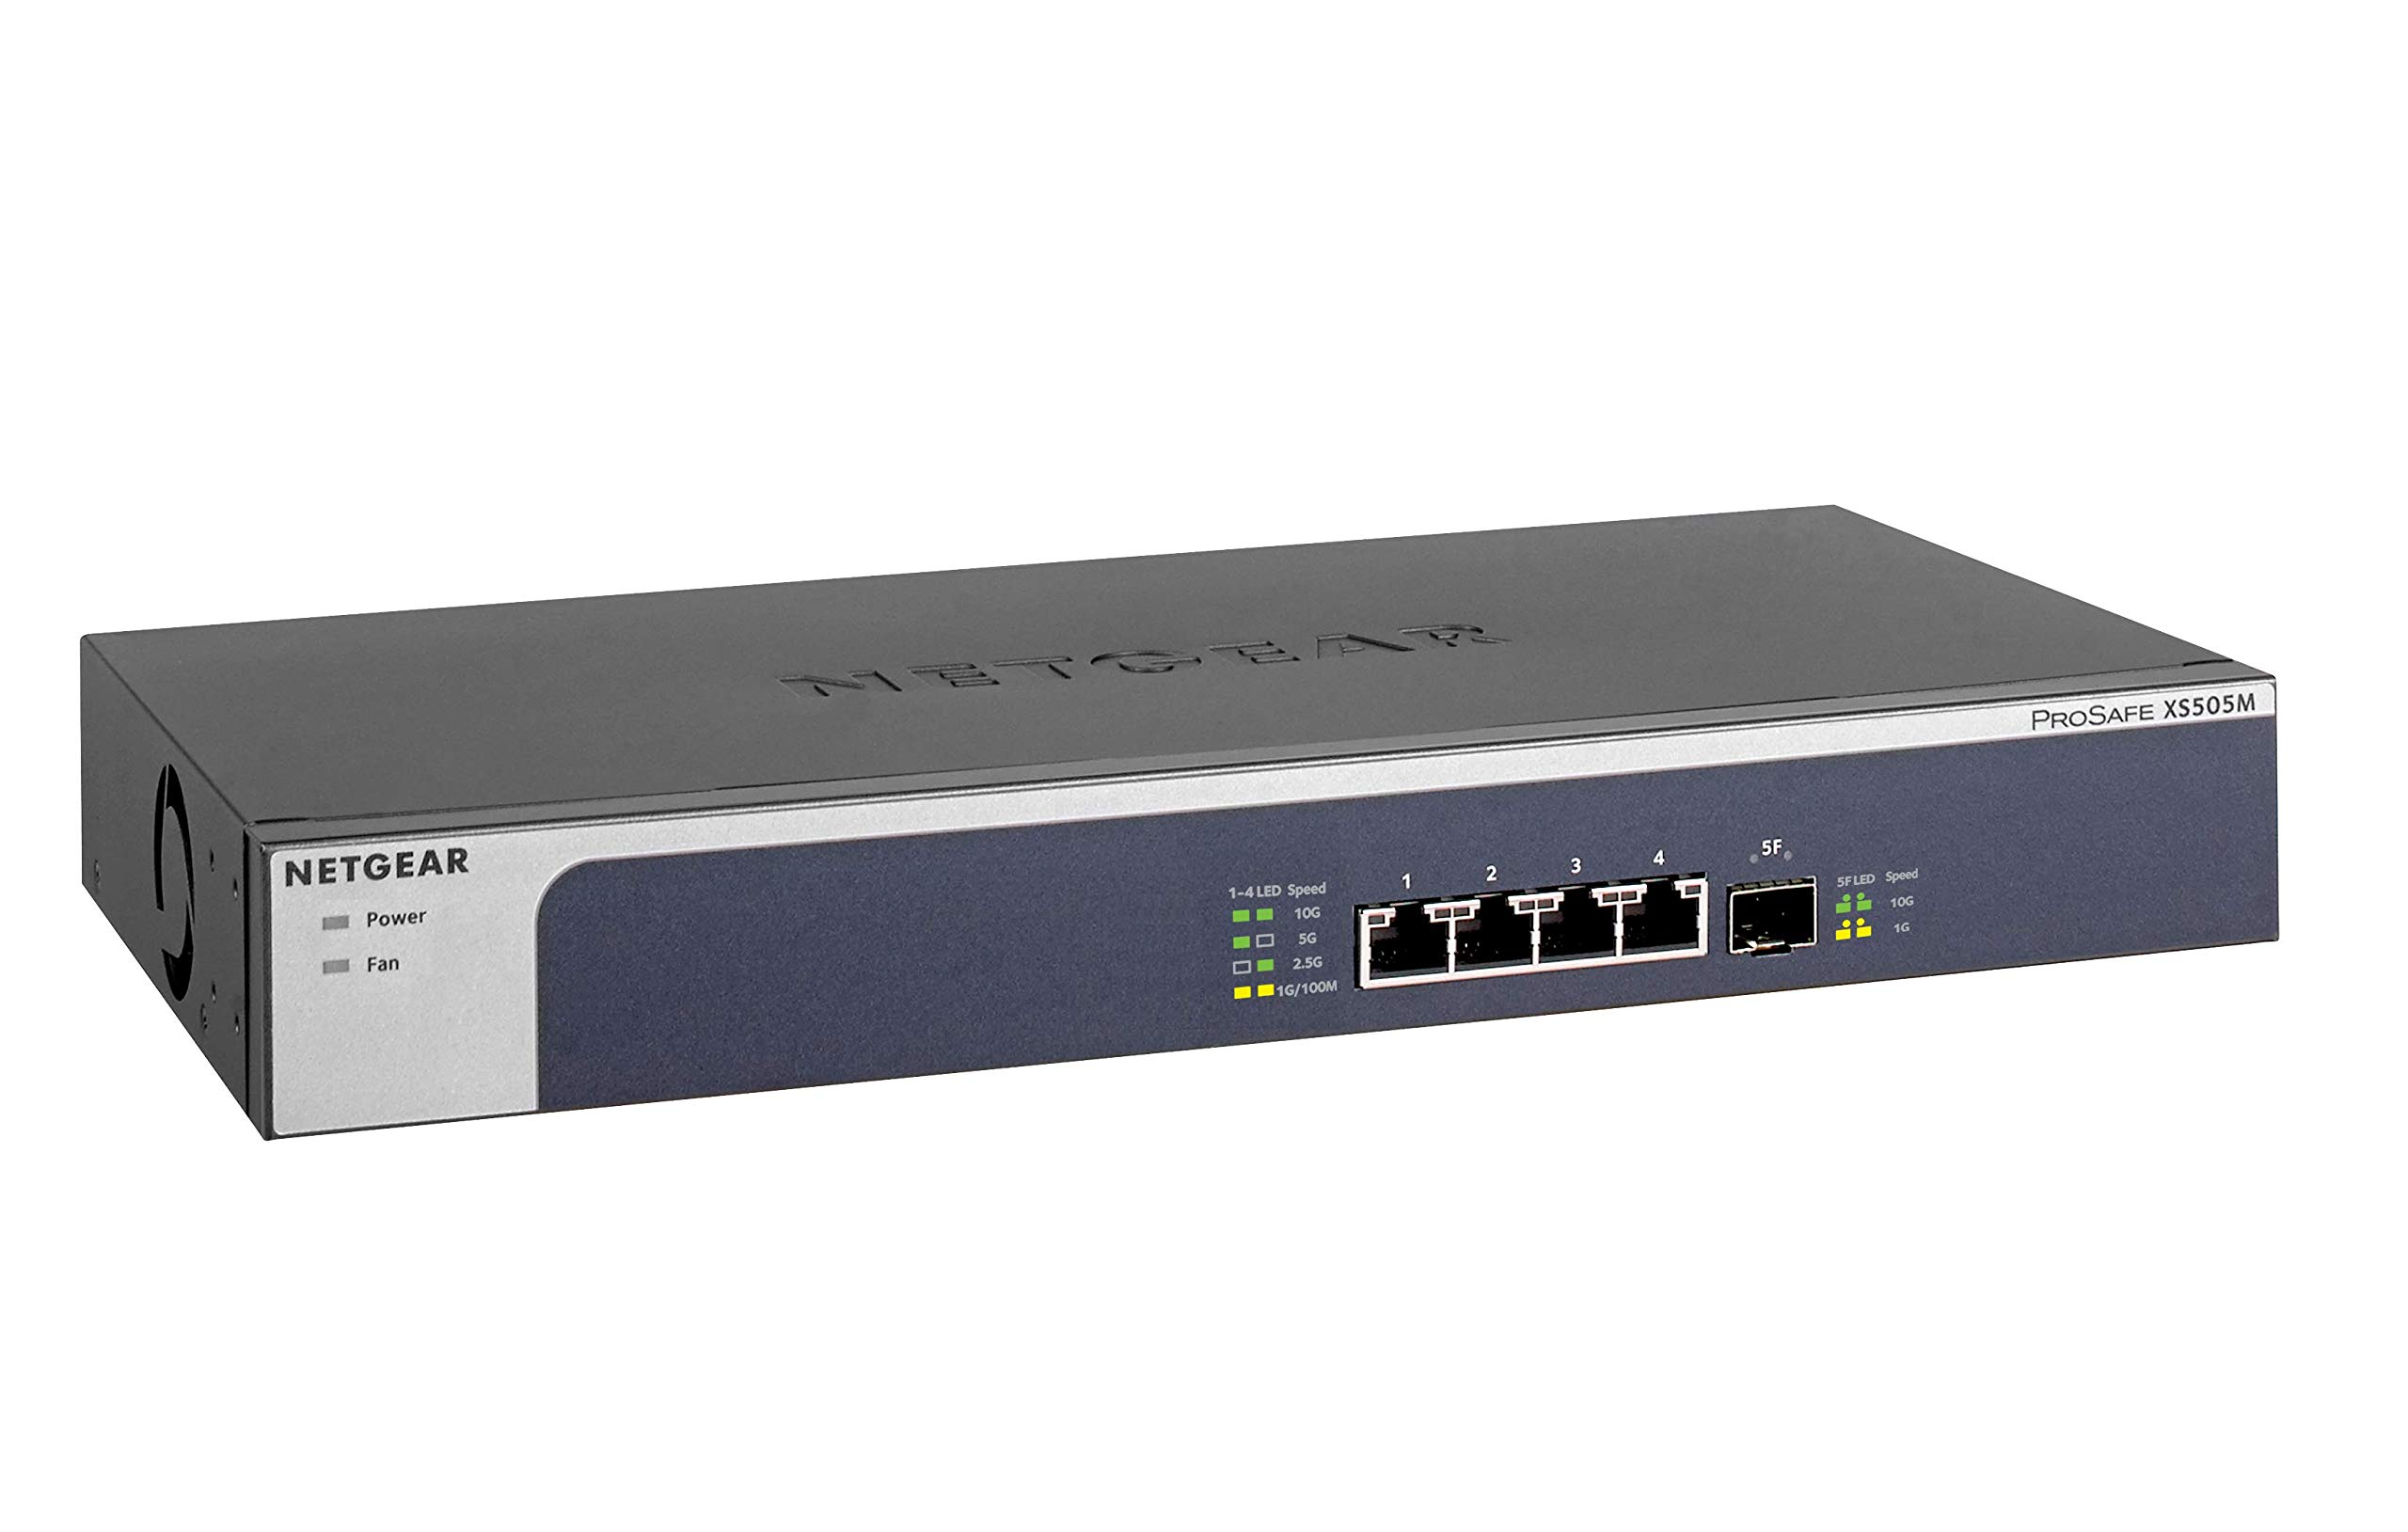 NETGEAR 5-Port 10G Multi-Gigabit Ethernet Unmanaged Switch (XS505M) - with 1 x 10G SFP+, Desktop/Rackmount, and ProSAFE Limited Lifetime Protection by NETGEAR